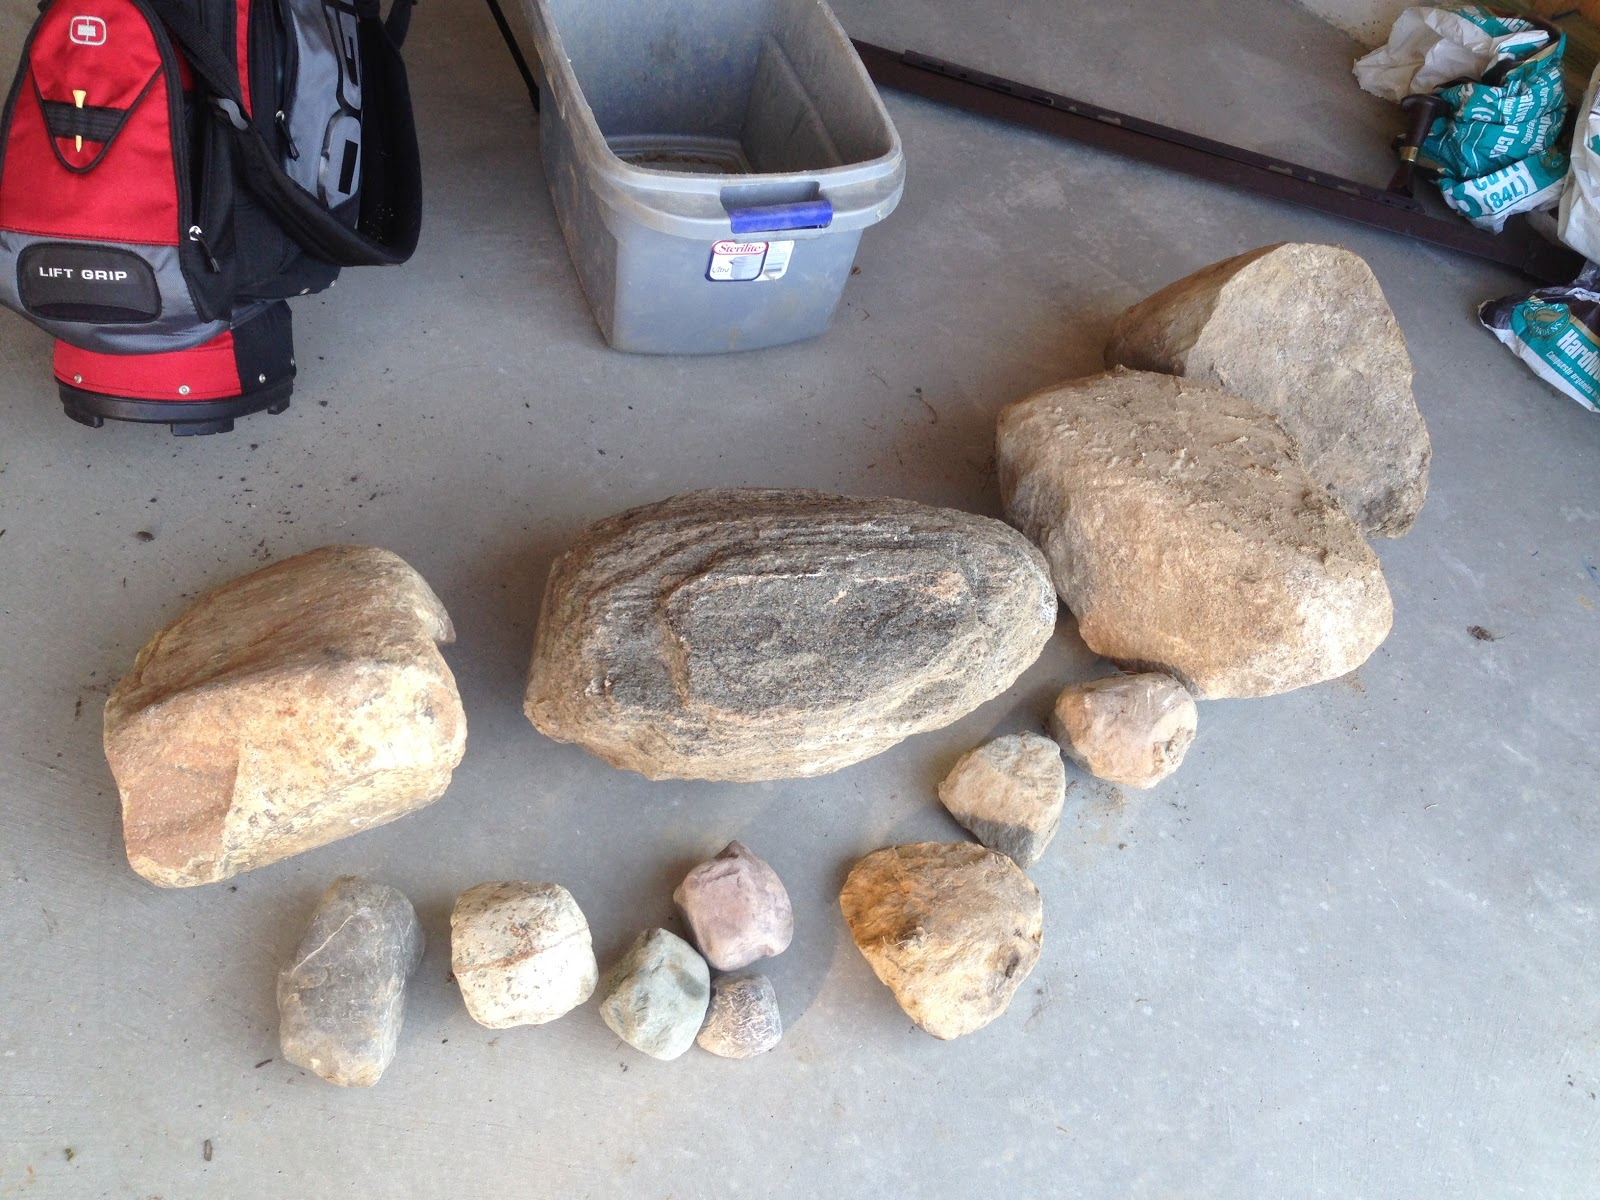 rock collection in garage